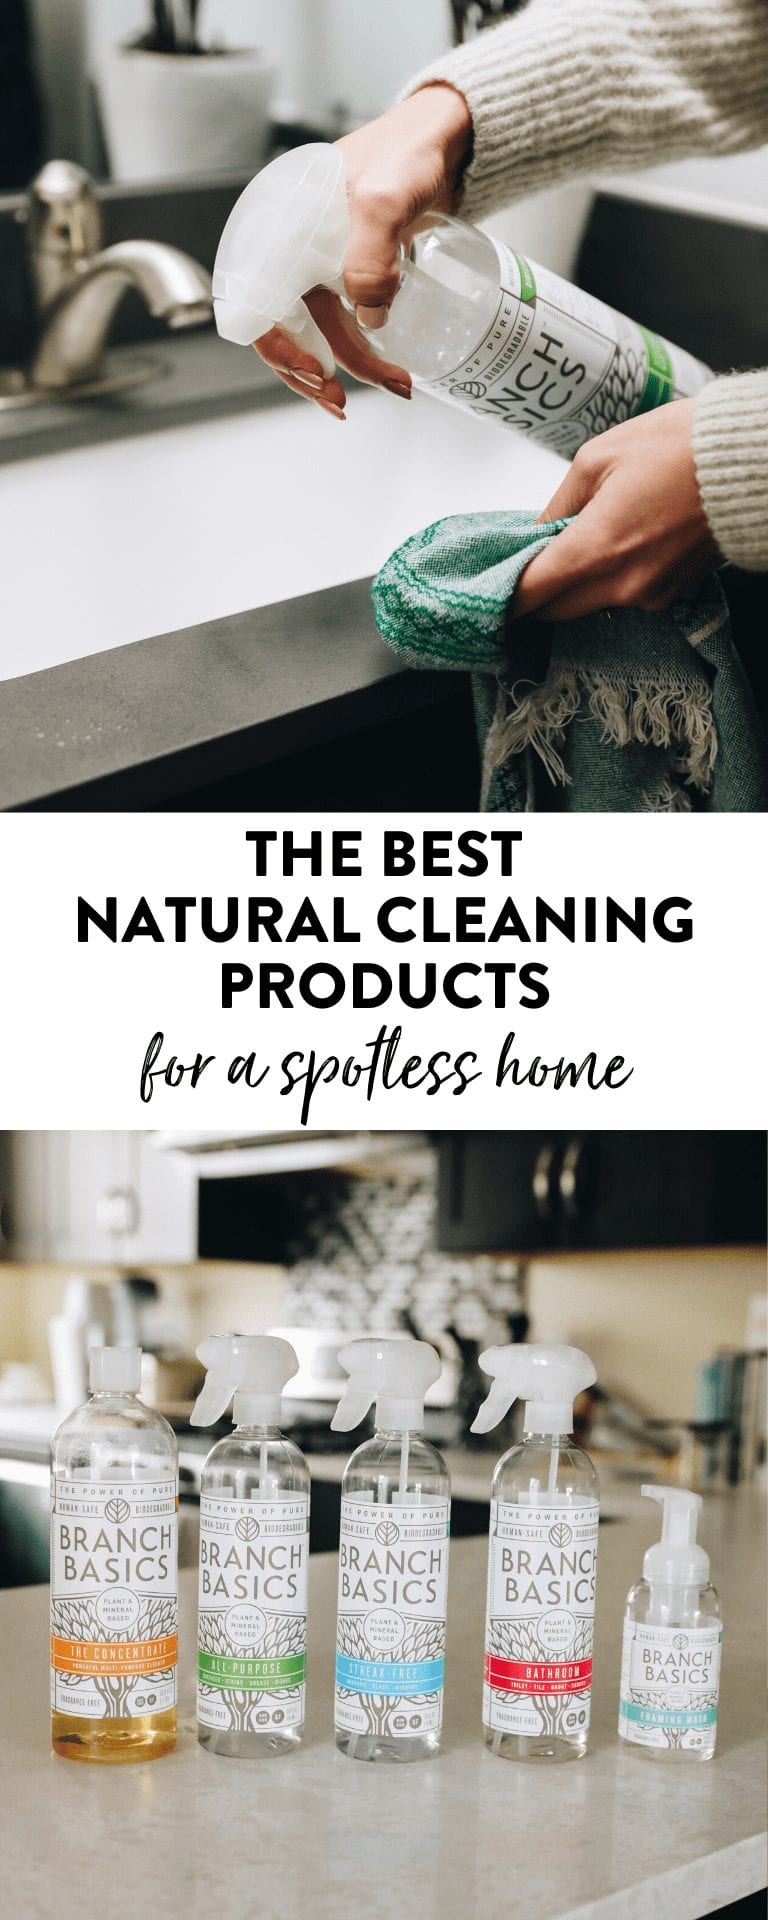 The Best Non Toxic Cleaning Products For Your Home The Healthy Maven